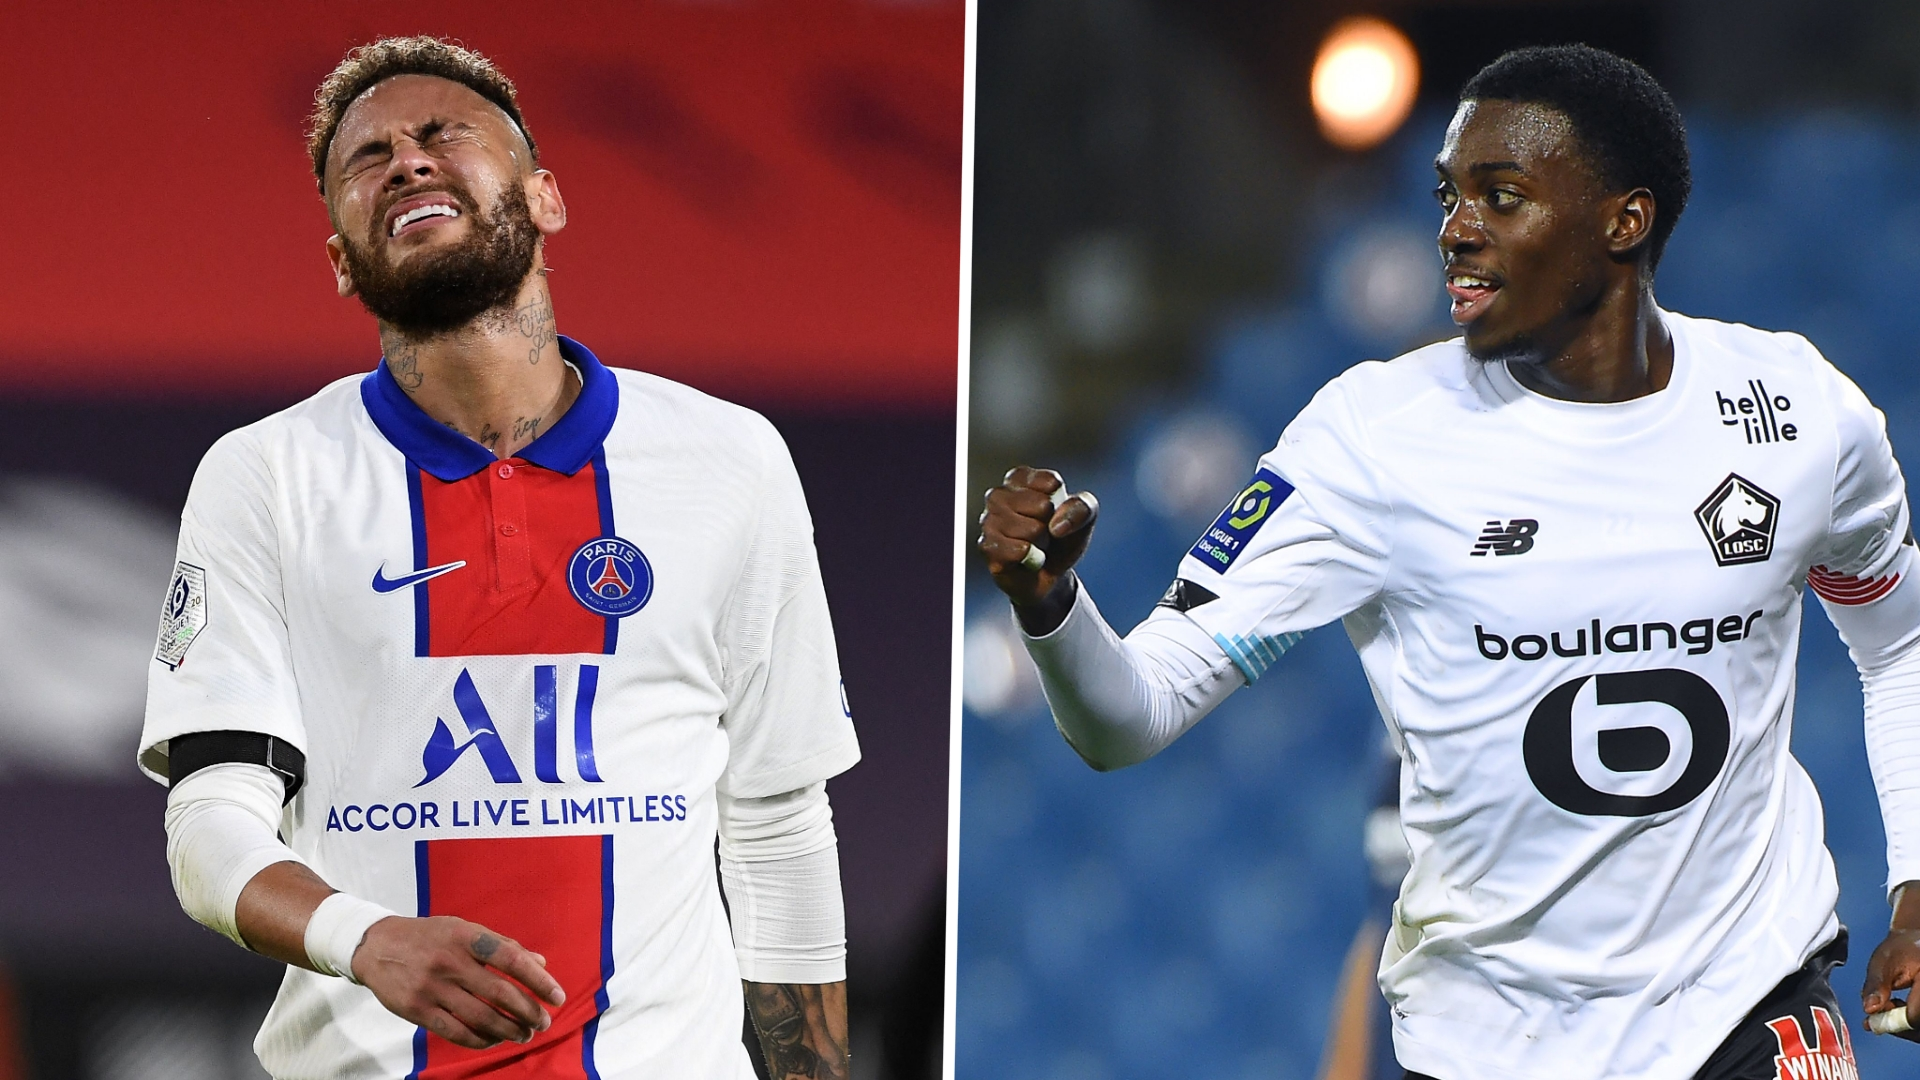 """Neymar is a """"good friend"""" but USMNT forward Weah has given up on Lille to throw PSG out of his perch"""